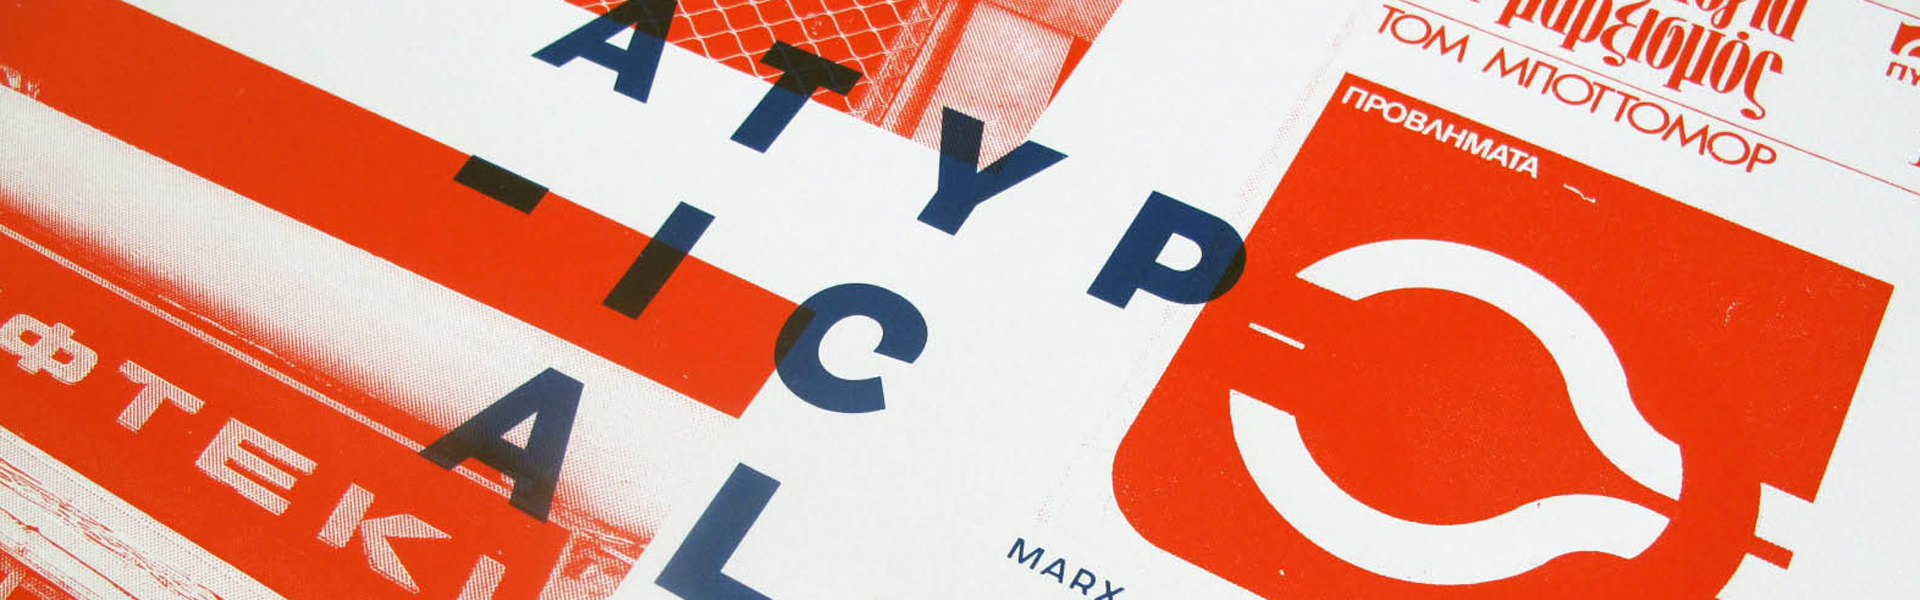 atypical type foundry